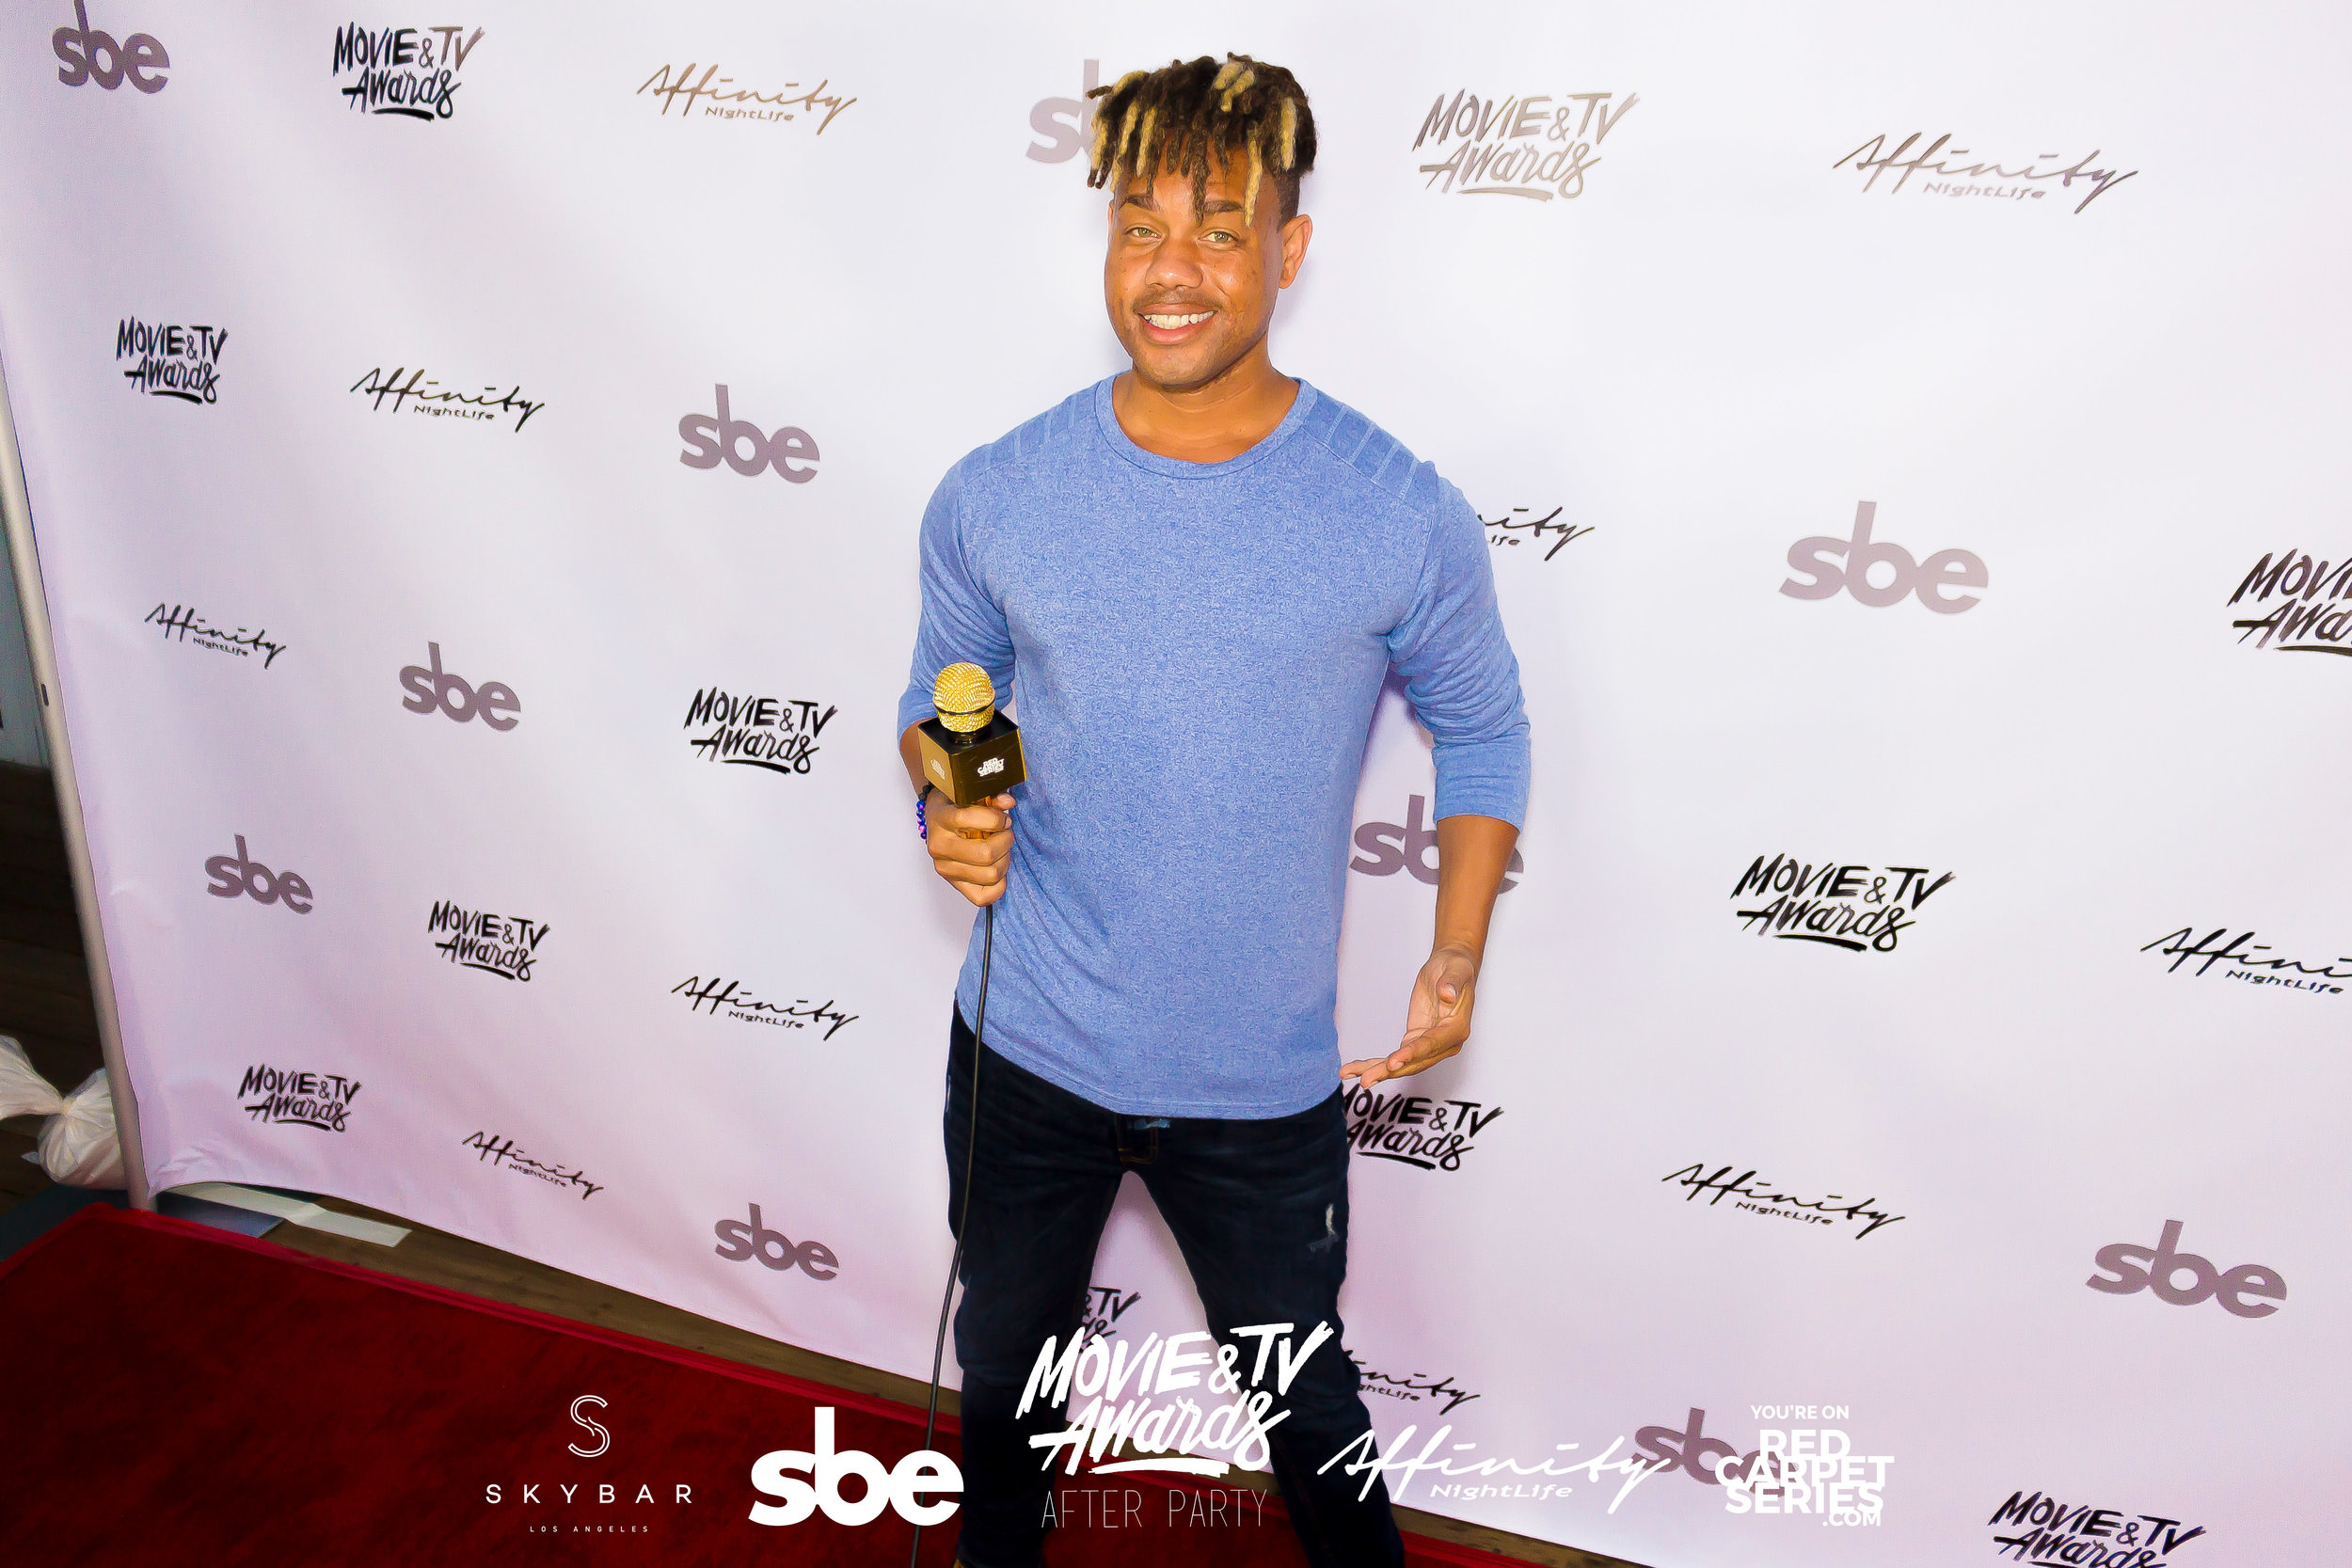 Affinity Nightlife MTV Movie & TV Awards After Party - Skybar at Mondrian - 06-15-19 - Vol. 1_6.jpg